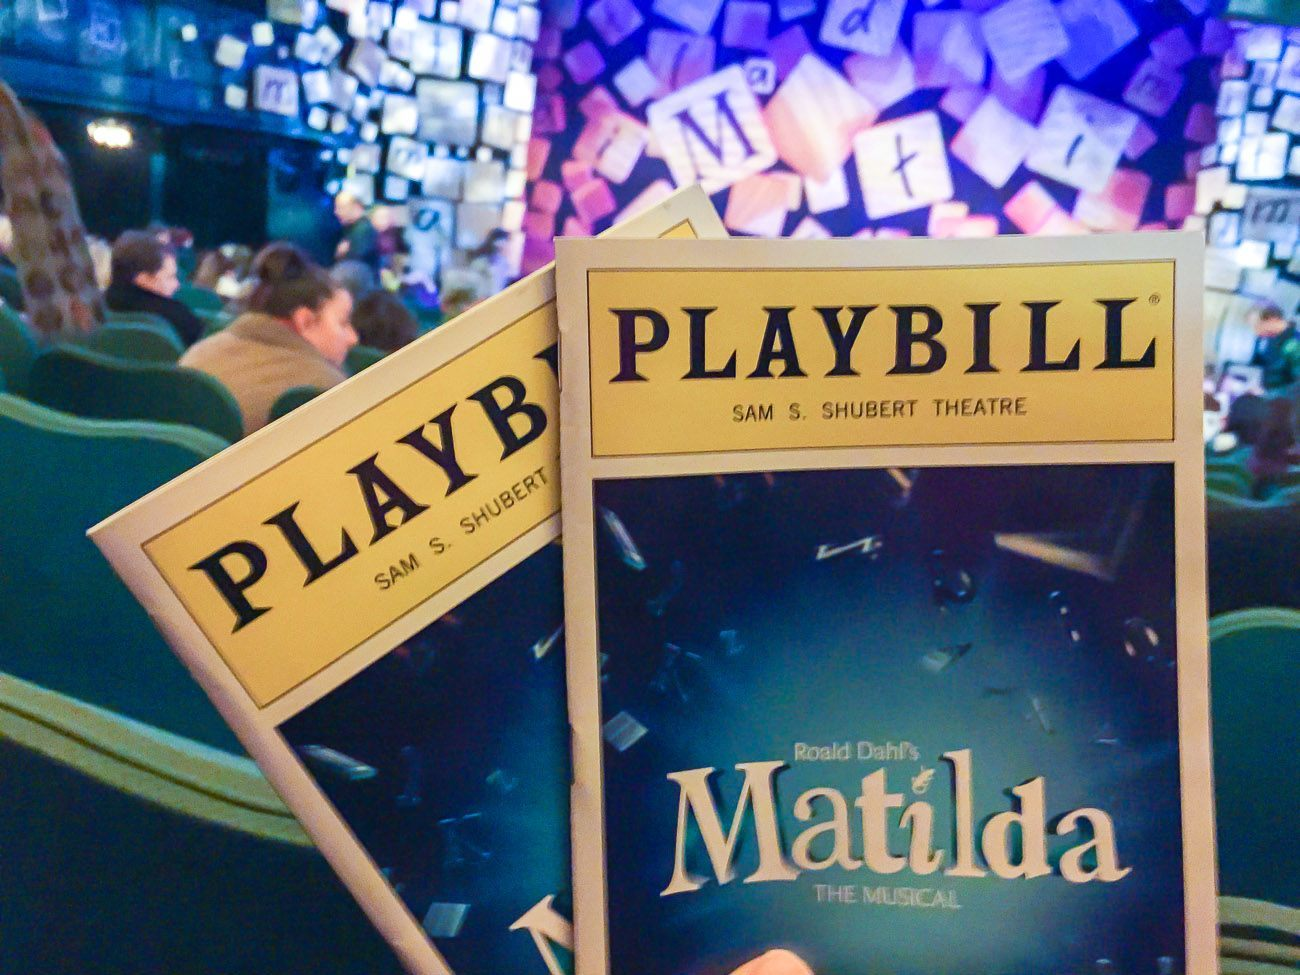 Matilda the Musical orchestra seats